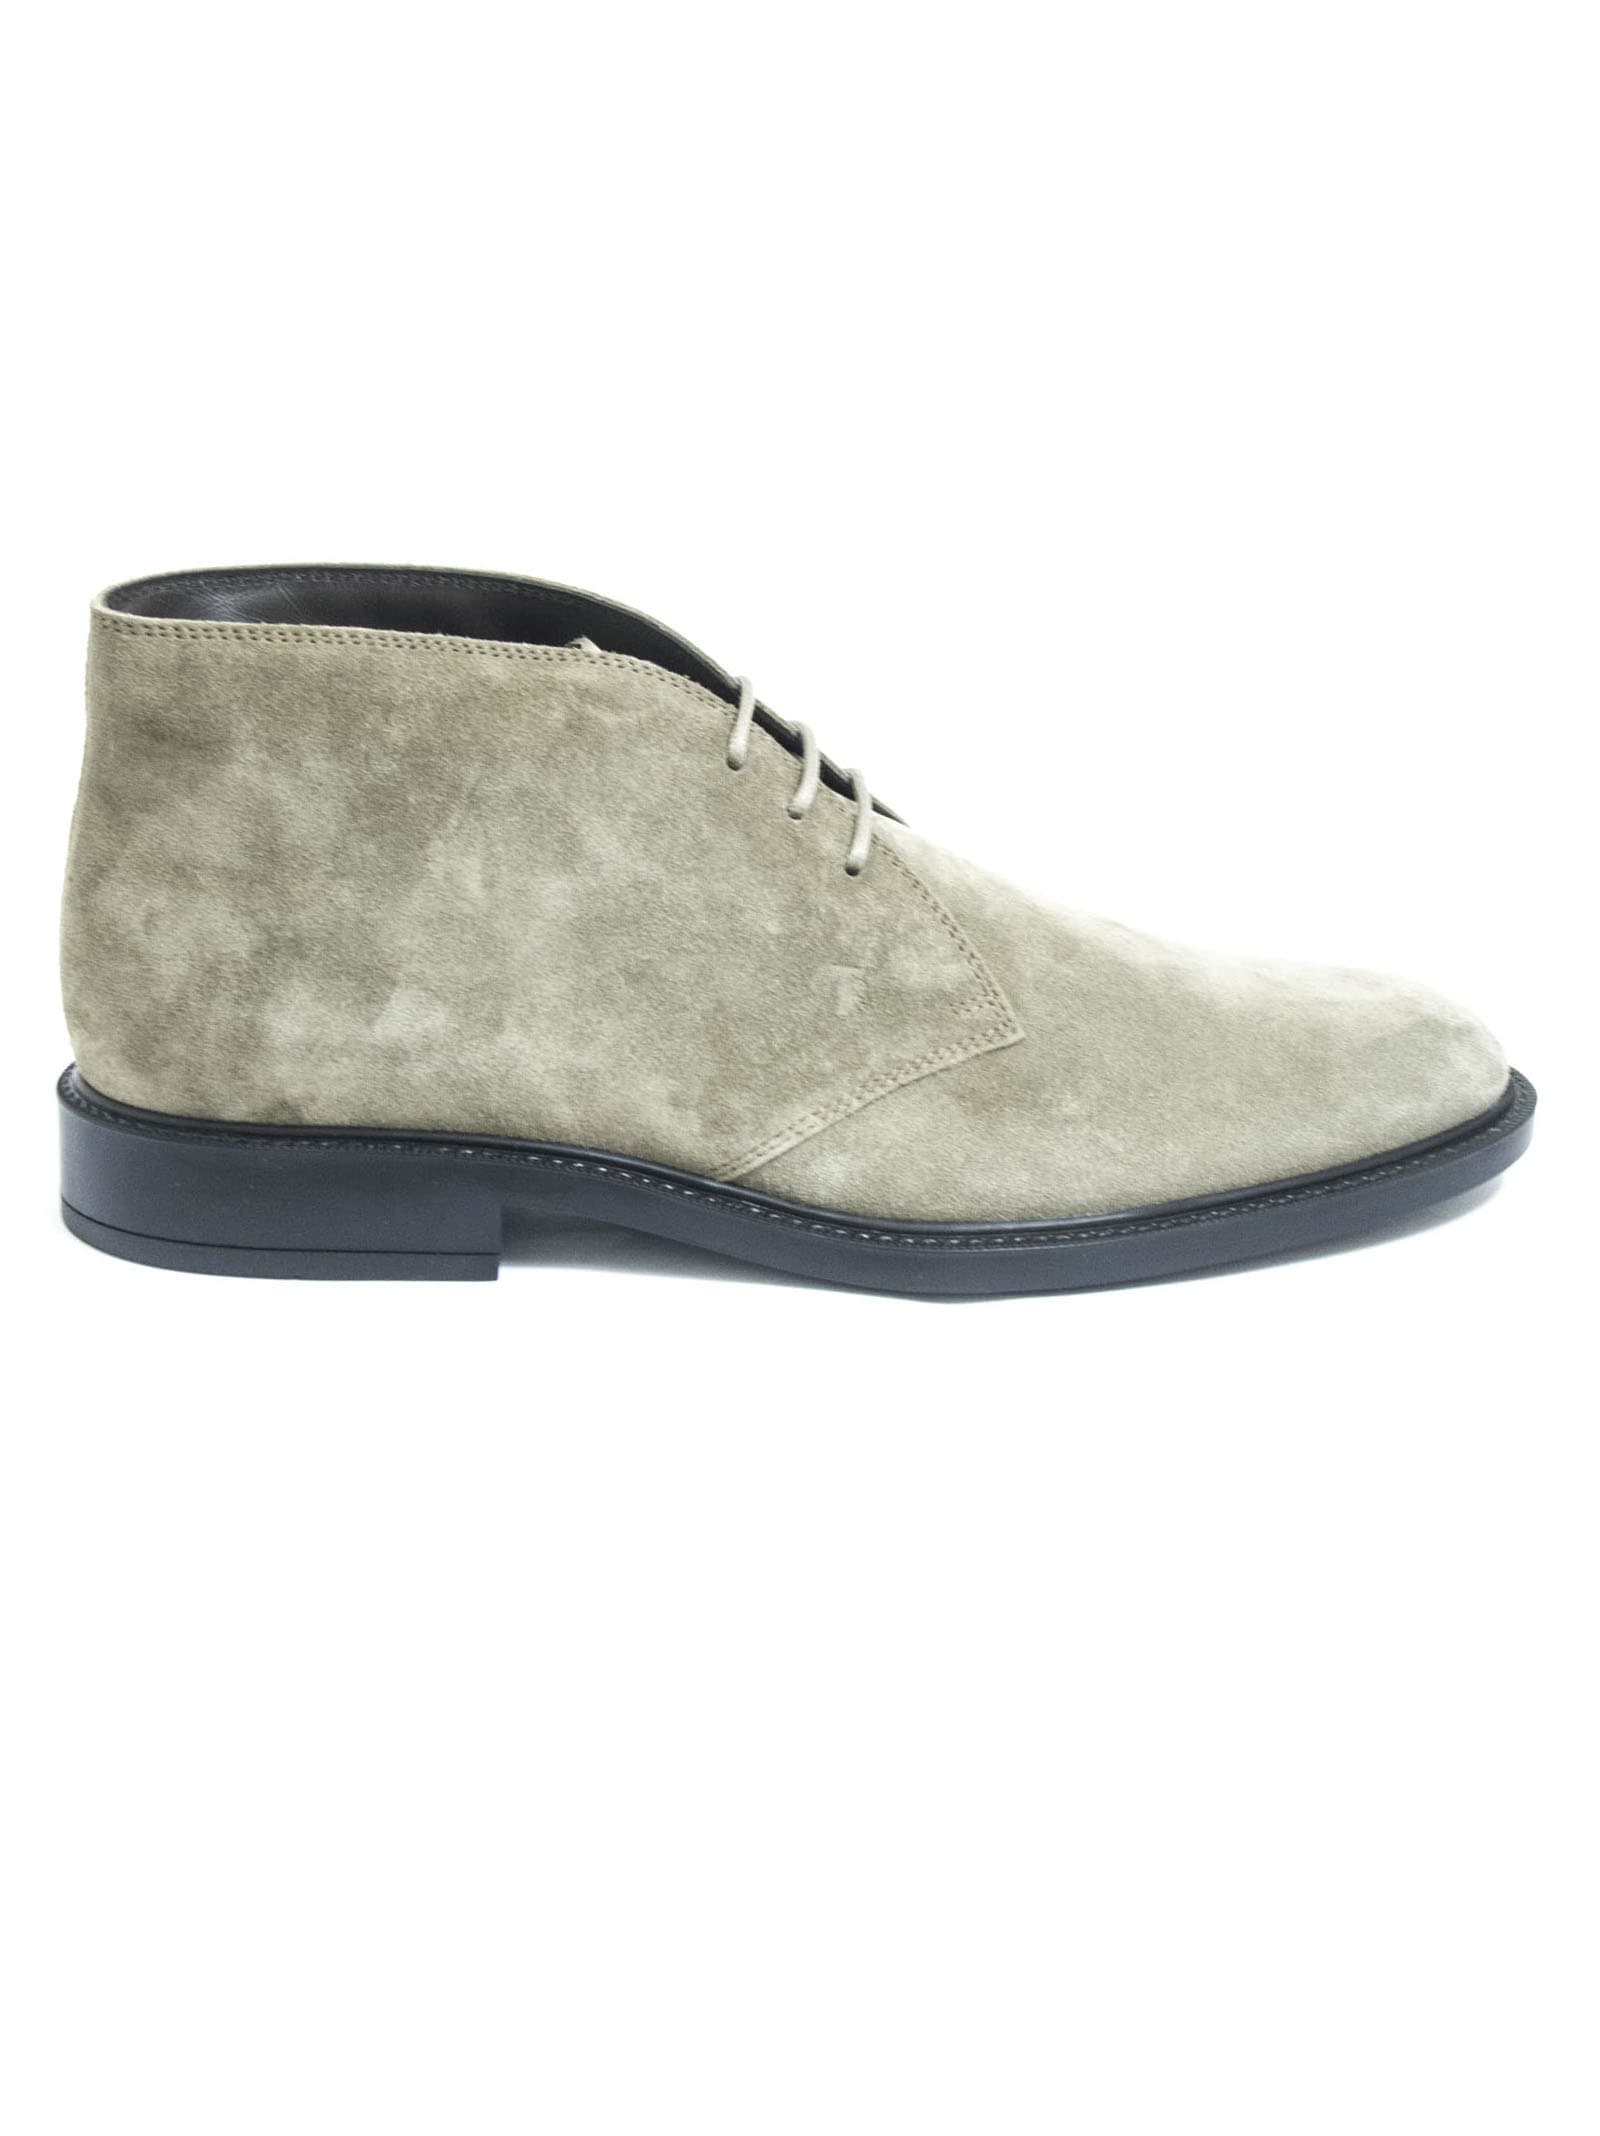 Tods Short Ankle Boots In Beige Suede